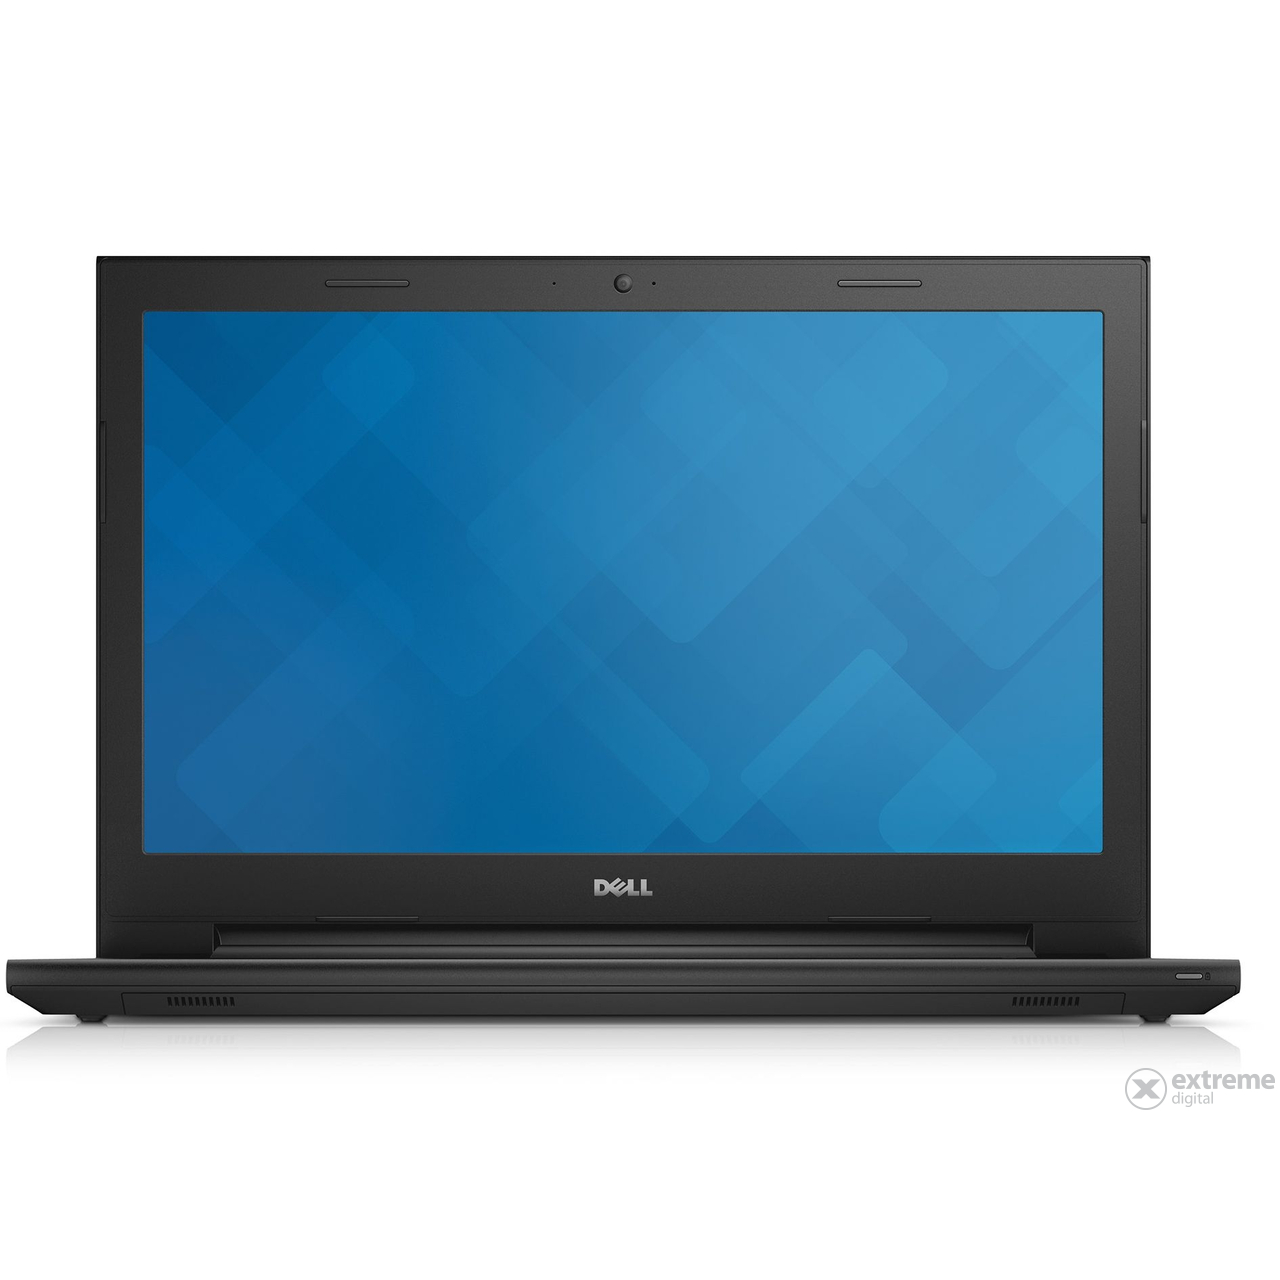 dell-inspiron-3542-171159-notebook-windows-8-1-fekete_afd10655.jpg